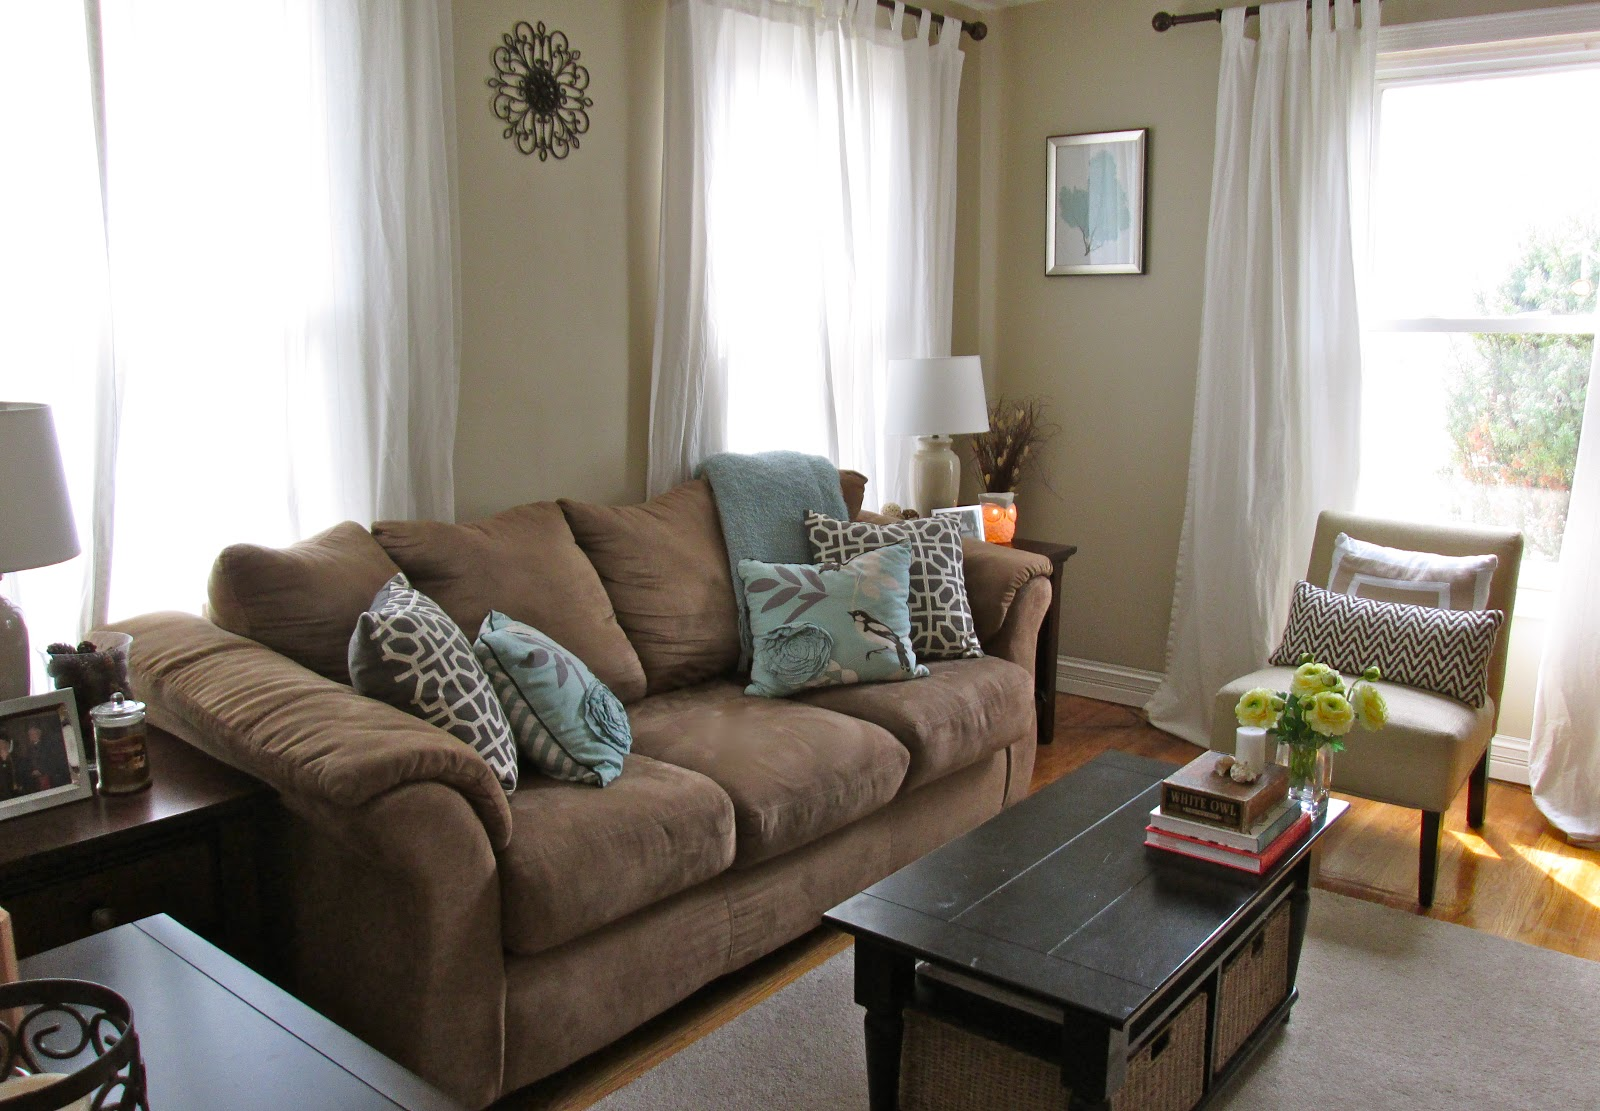 comfortable dark grey sofa decorative pillows light grey reading chair with monochromatic pillow dark wooden table with rattan basket underneath